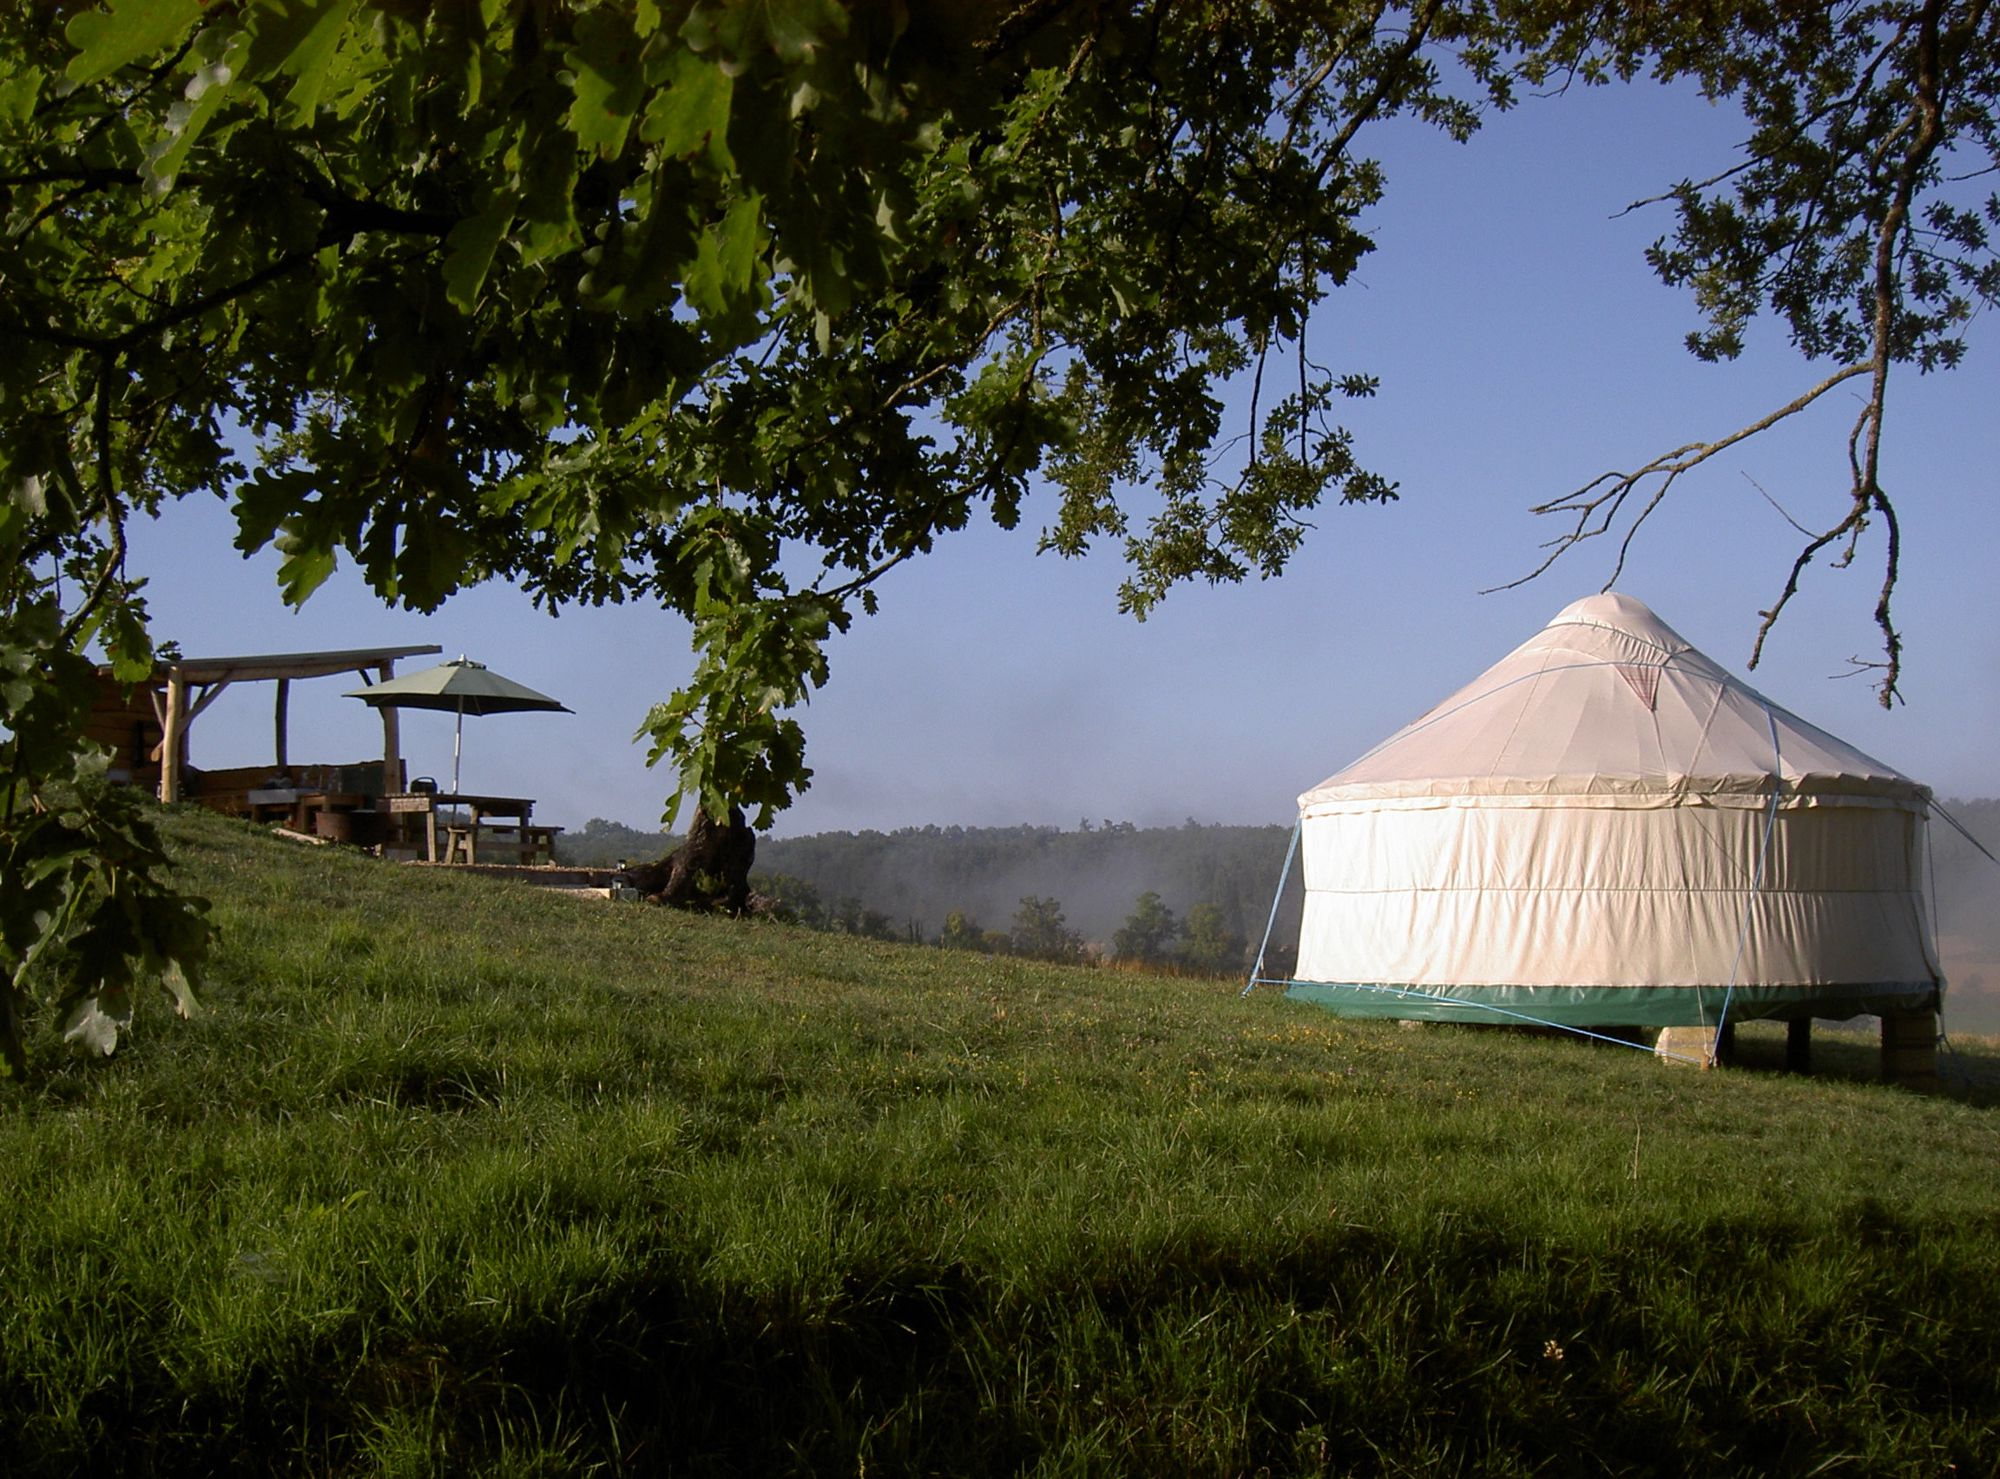 Chilled out yurt glamping in the blissful rural isolation of the Dordogne.